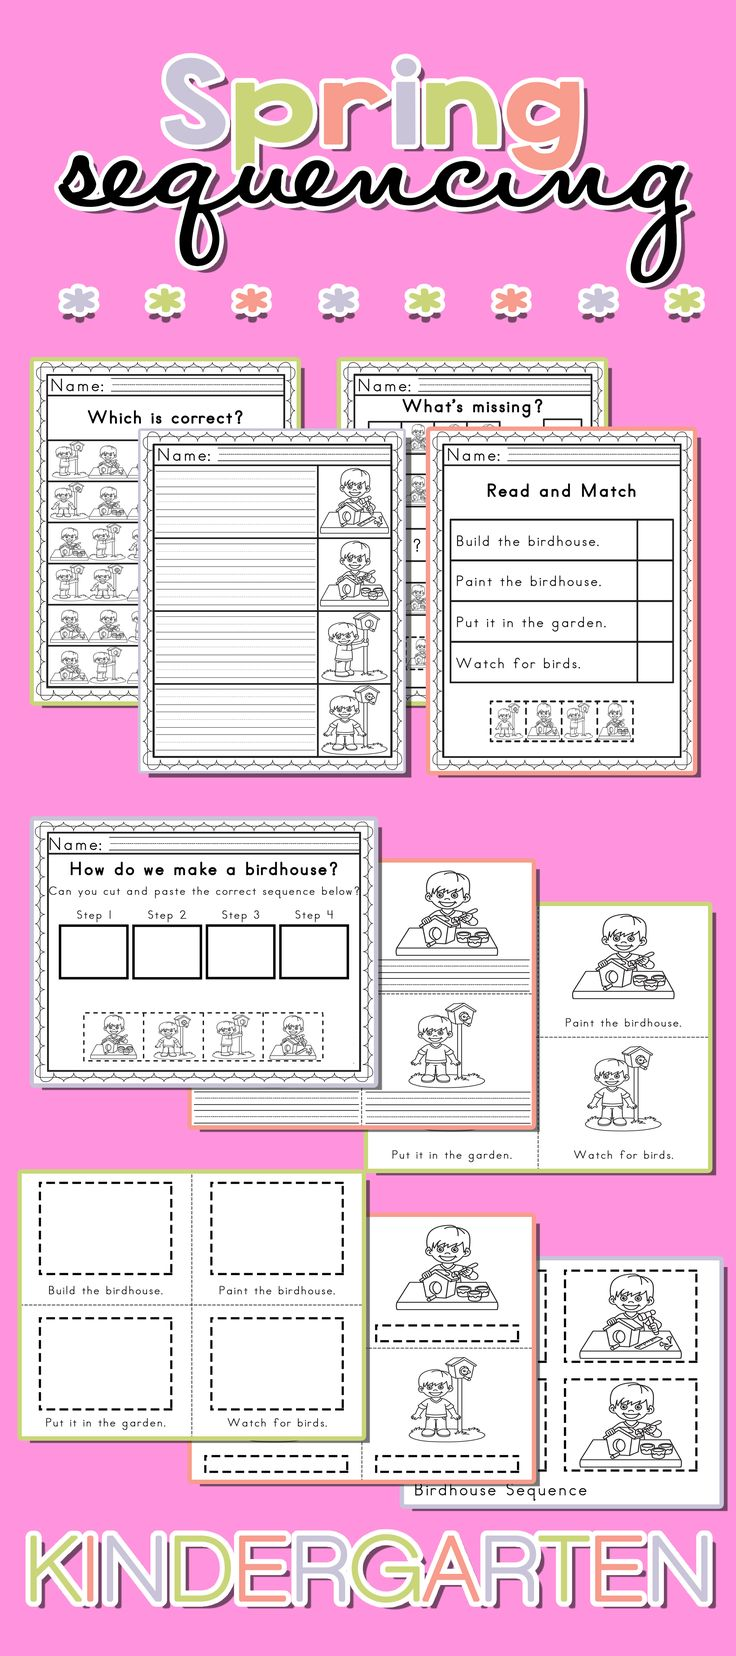 Worksheets Sequencing Worksheets best 25 sequencing worksheets ideas on pinterest story spring worksheets